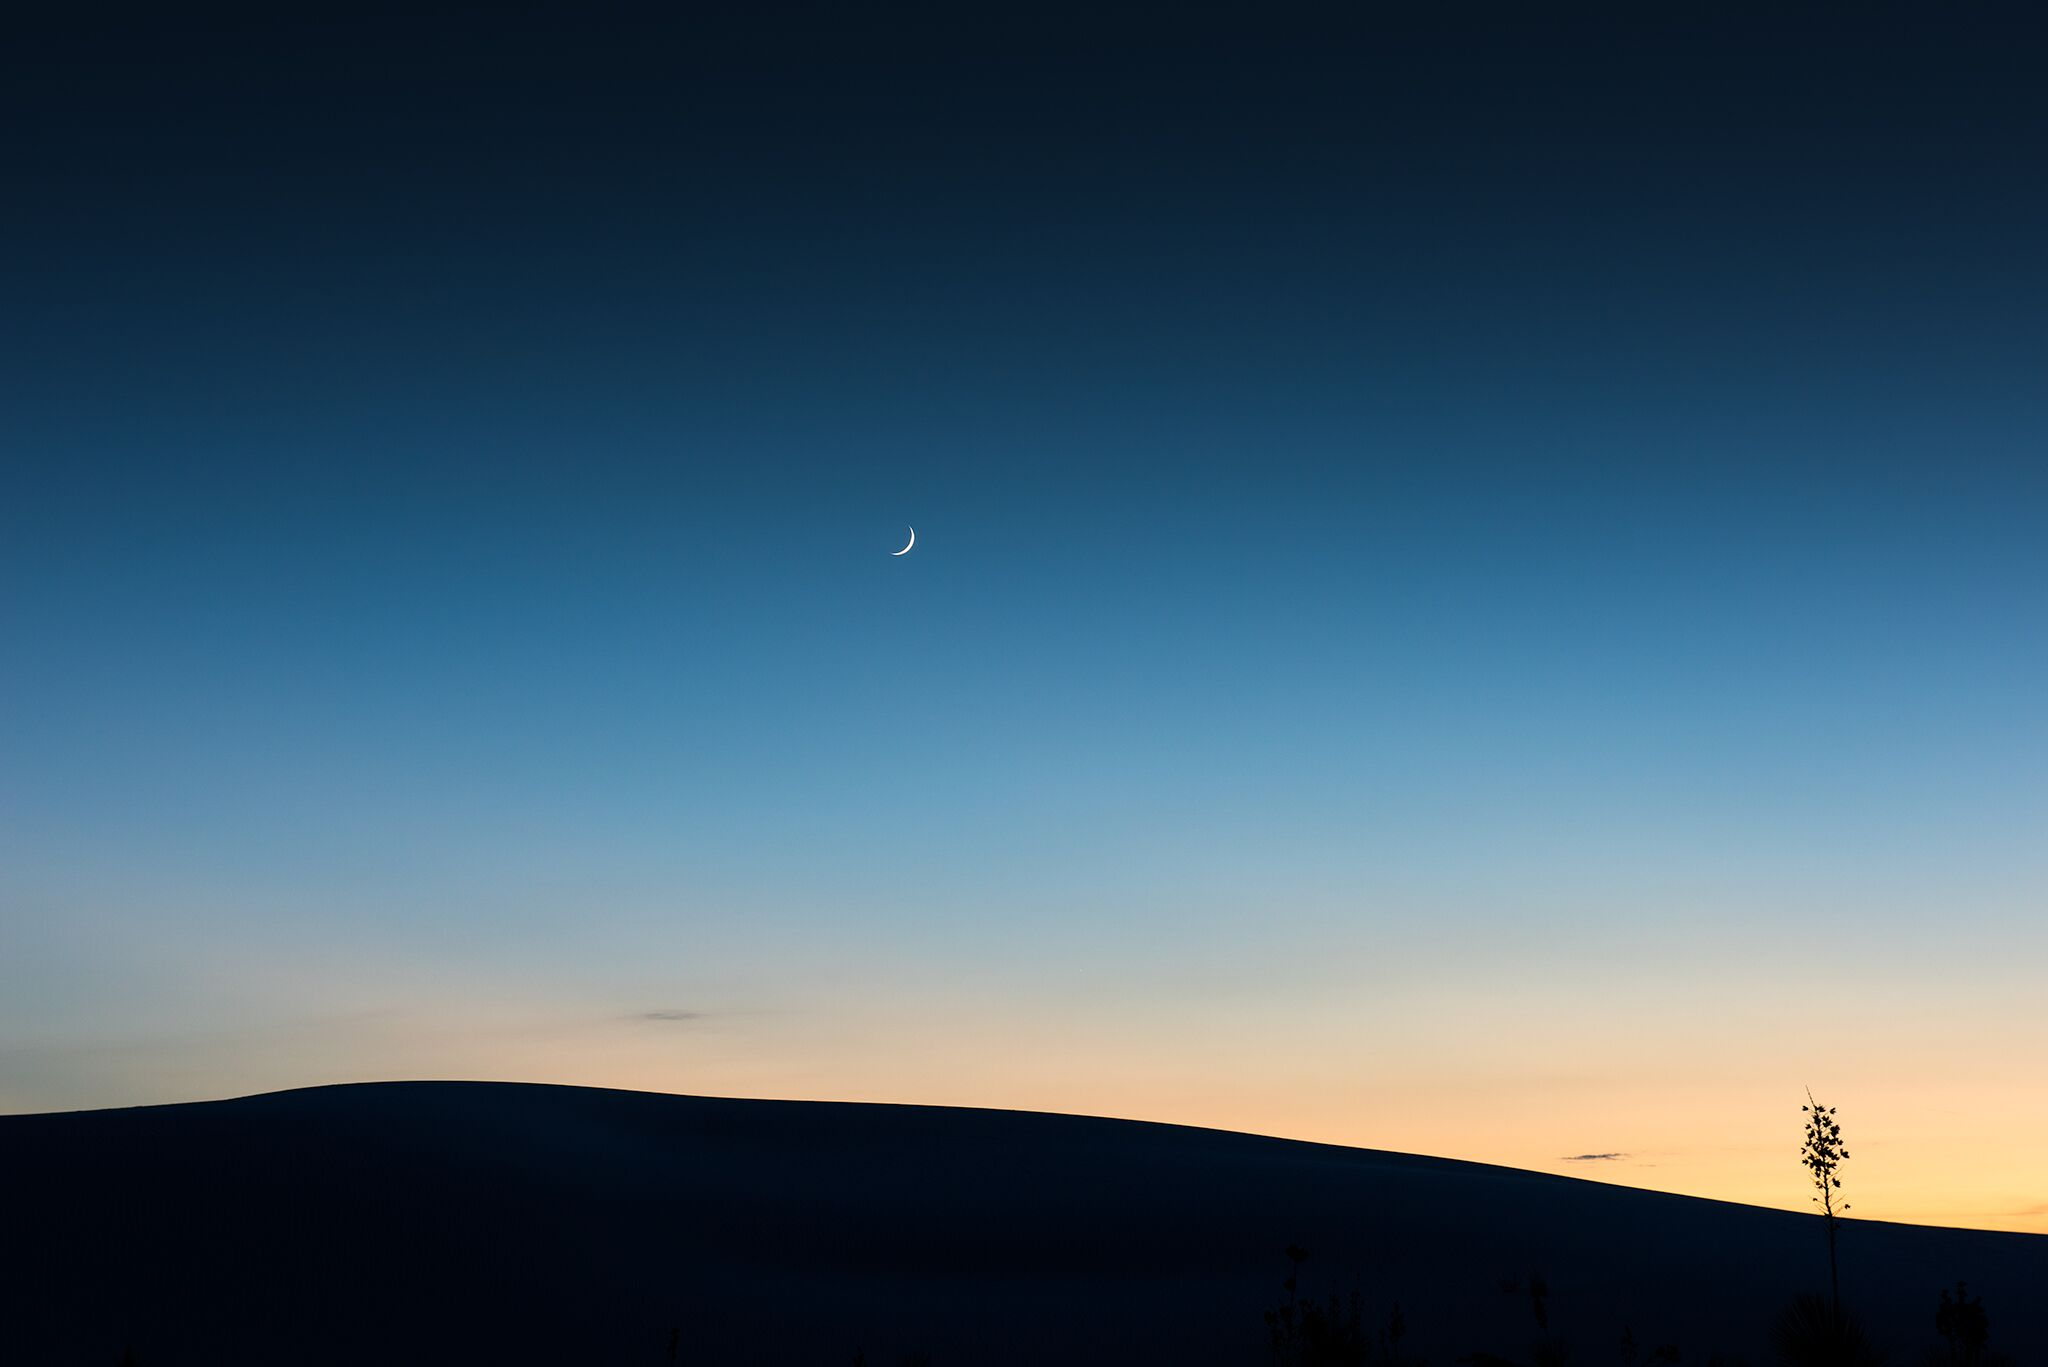 Under a Crescent Moon, Twilight, September 26, 2014, White Sands National Monument, New Mexico